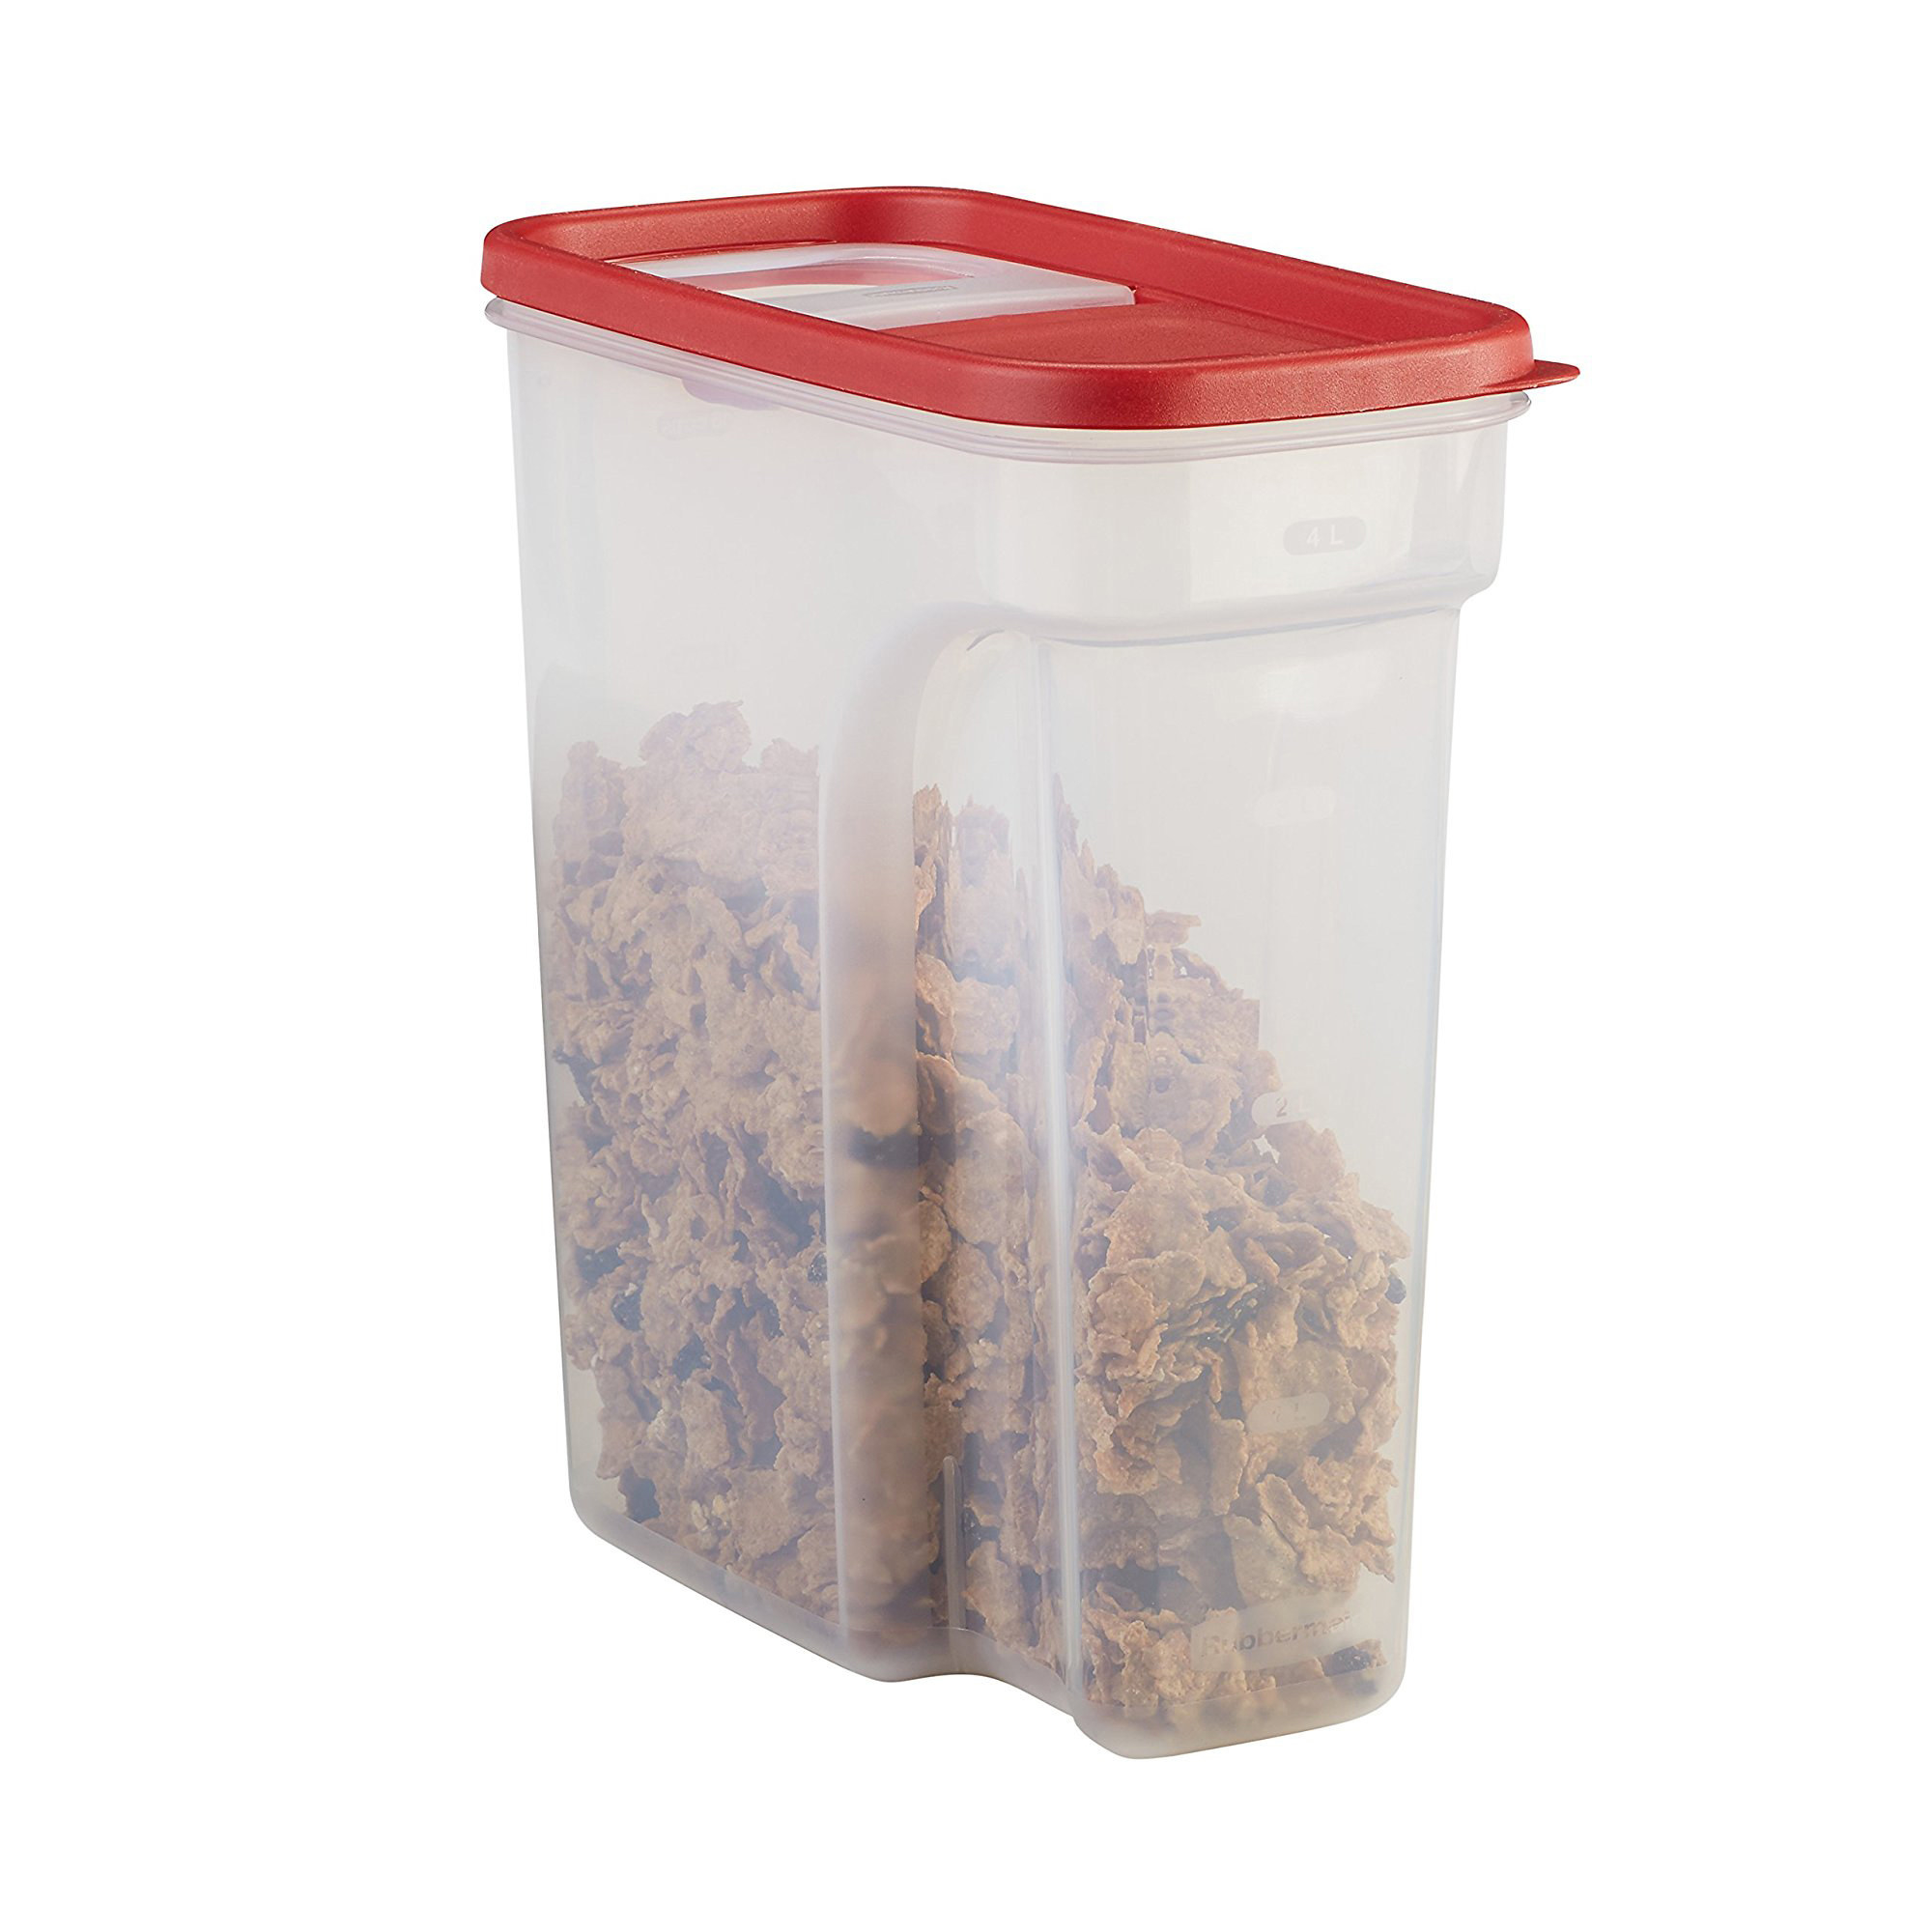 Tall, narrow food storage container with red flip top